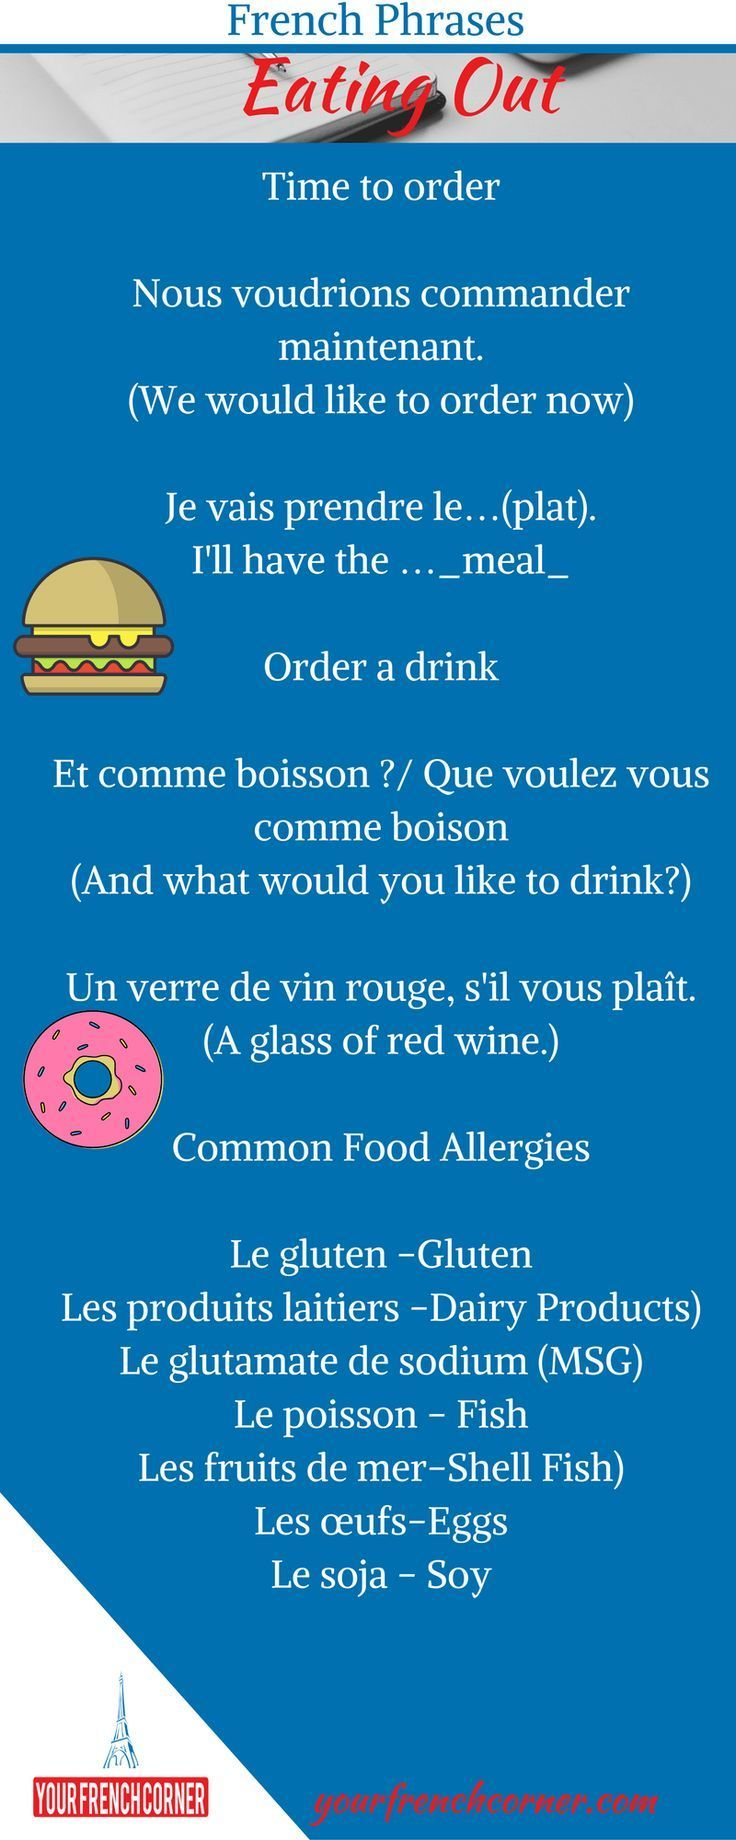 61 phrases for French Travellers Repin for later :-)  #travel #holidayvacation #french#francais#learnfrench#vocabulary#frenchlanguage#bilingual#multilingual#summer#school#startup#apprendrefrancais#language#polygot#learning#apfrench#duolingo#frenchies#begi